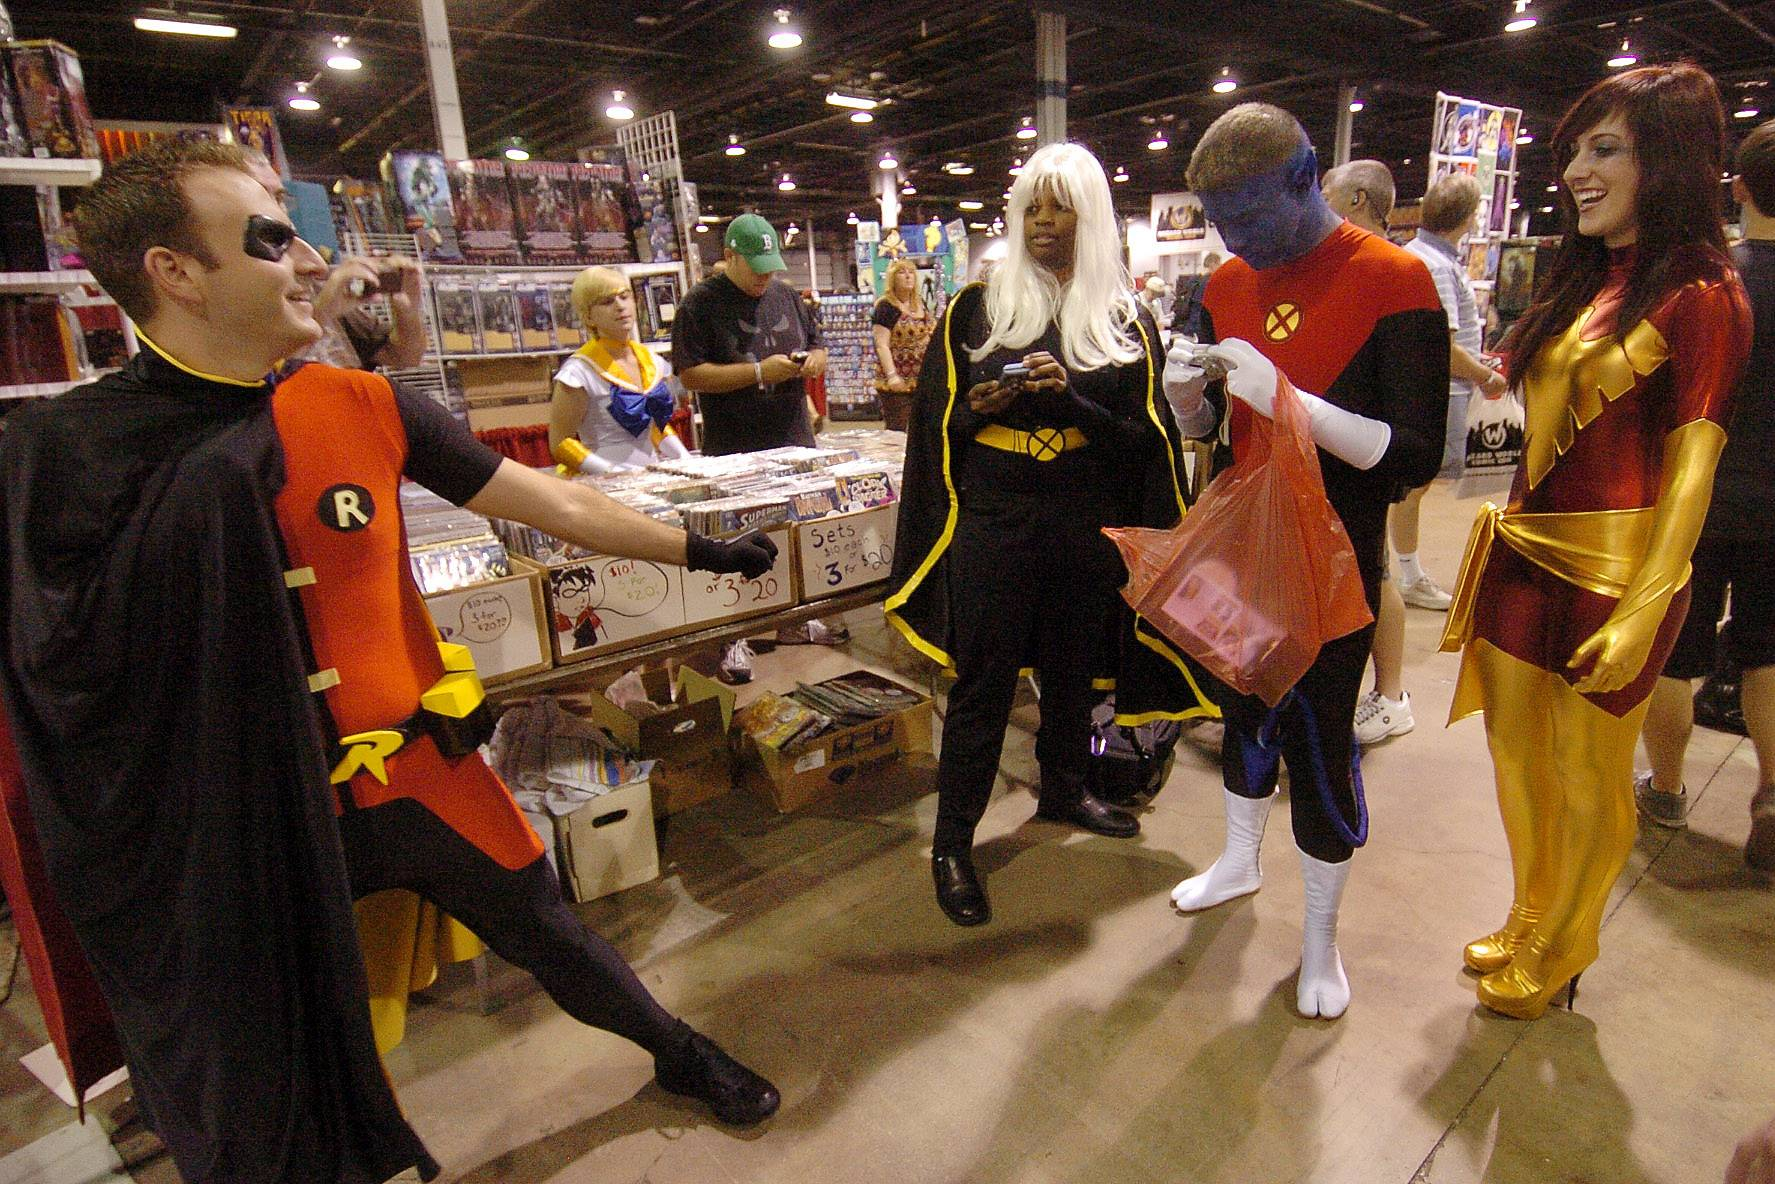 Many fans bring out their costumes for the annual Chicago Comic Con in Rosemont.